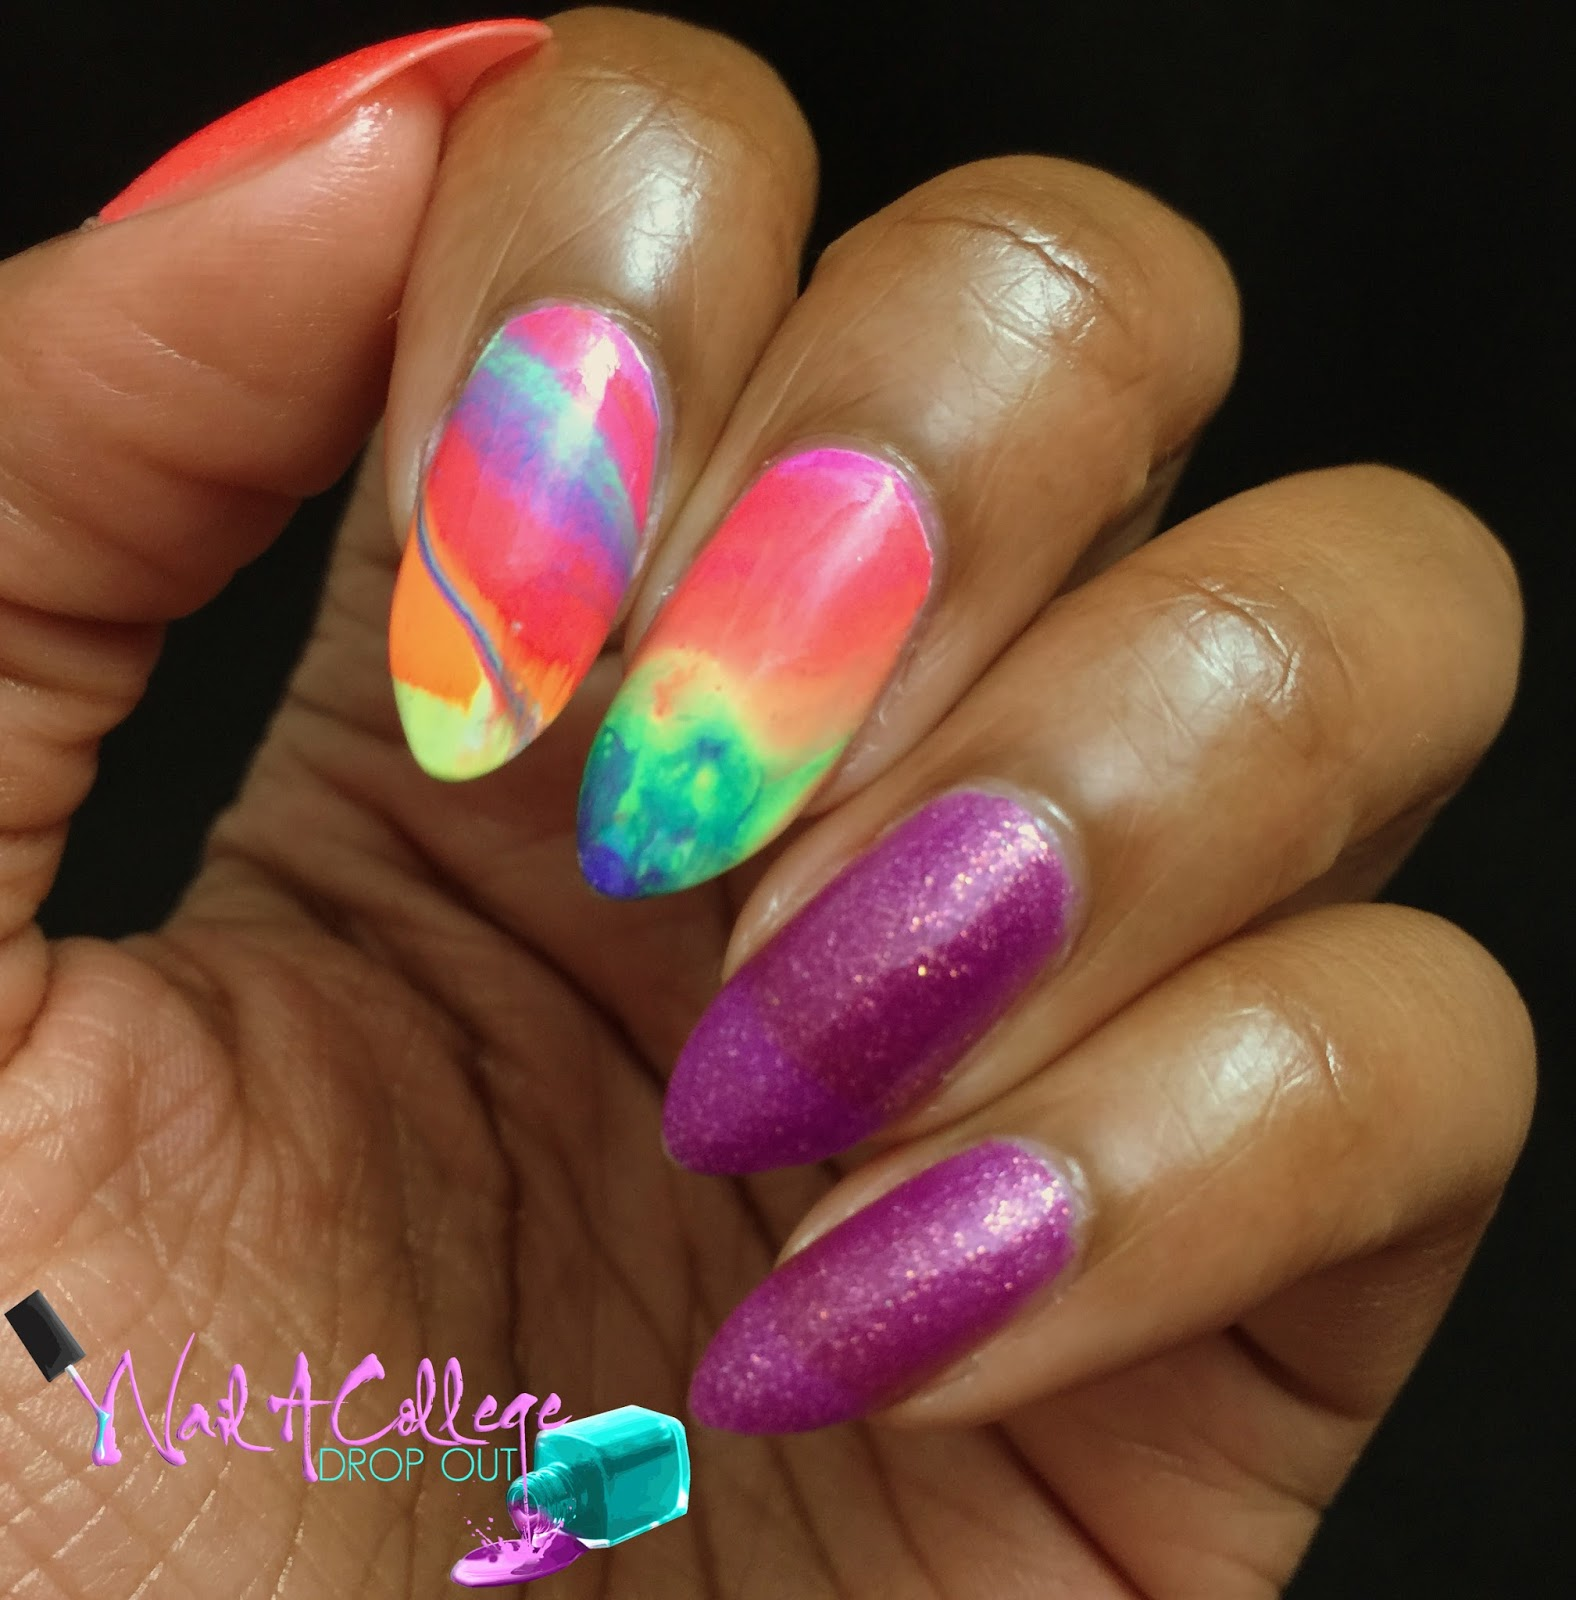 Full color nail art - You Can Catch Here It Contains Where You Can Get This Collection And Full Color Descriptions